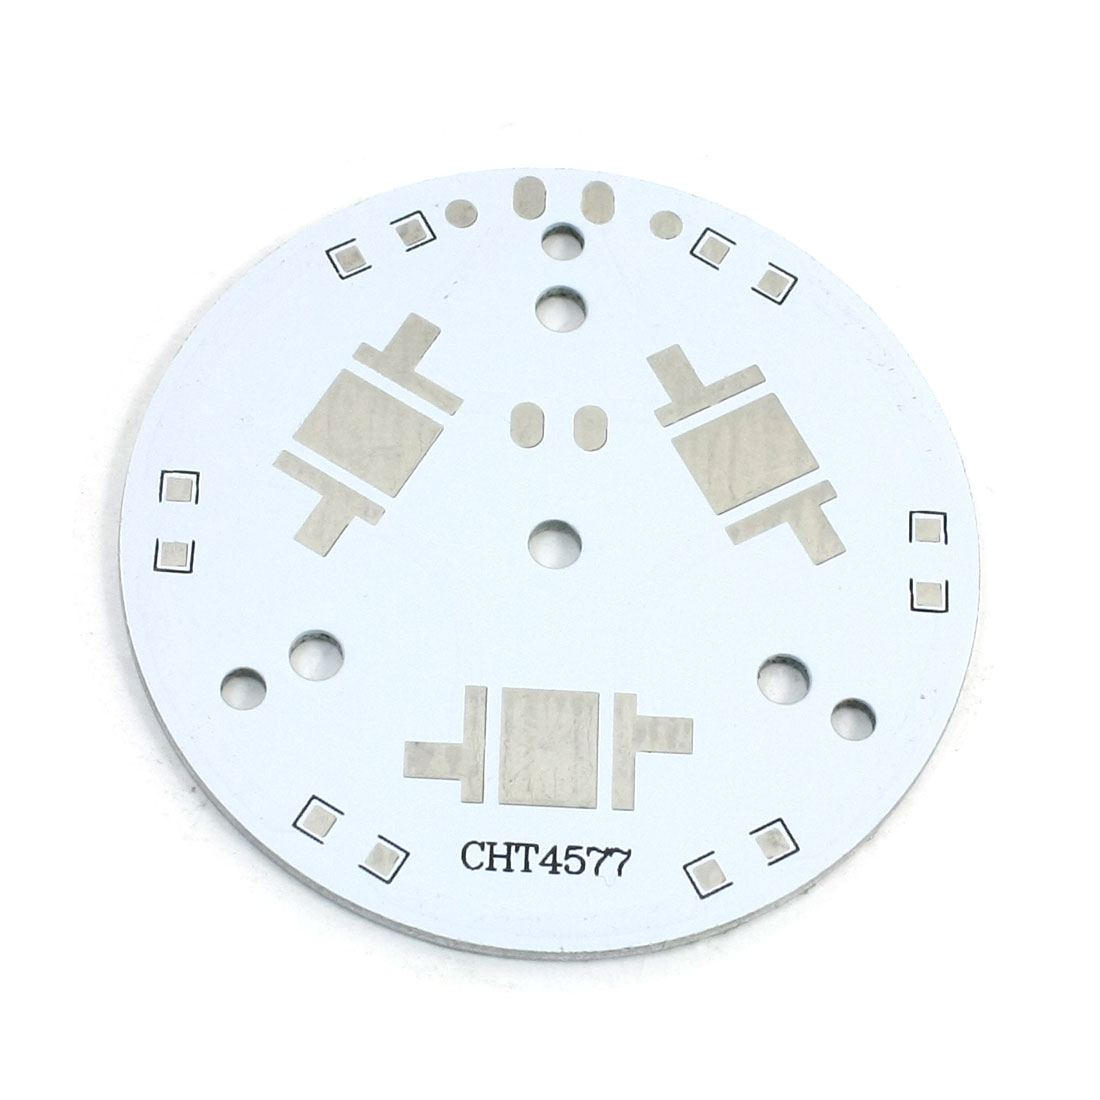 50mm 3 x 1W/3W/5W LED Round Aluminum PCB Circuit Board Base Plate